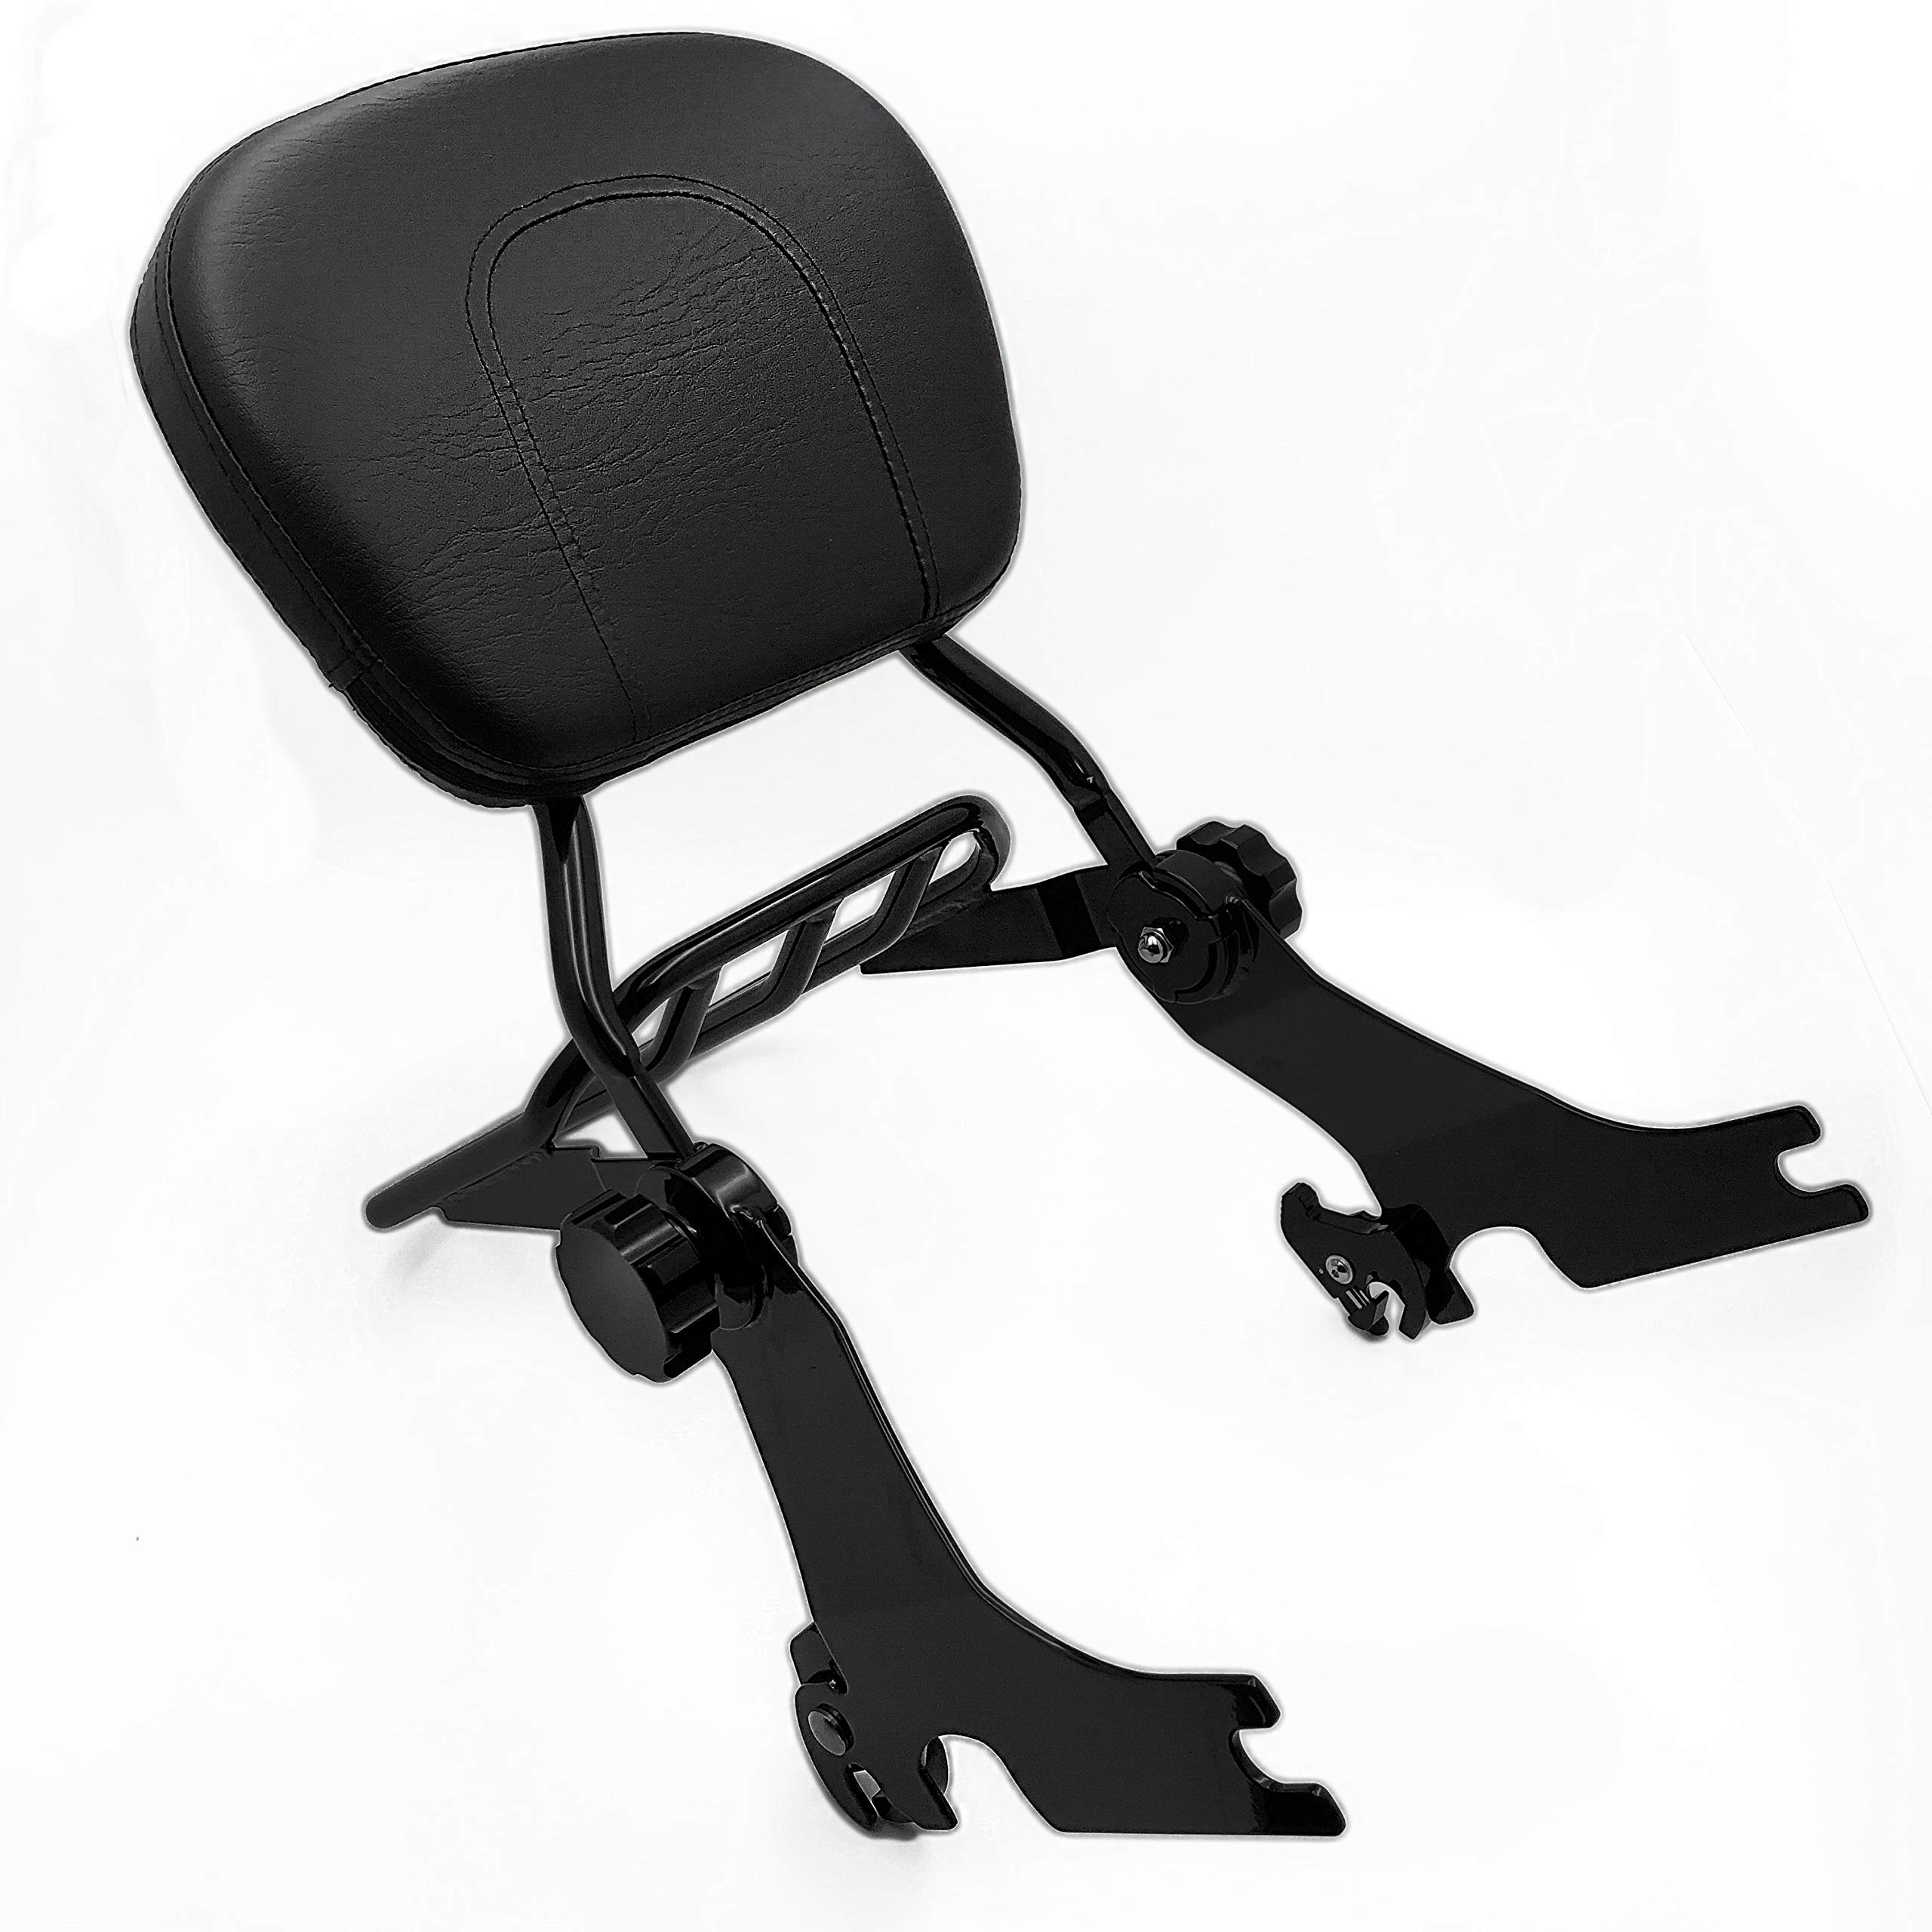 Motherwell 2-Up Backrest Mwl-165 Rack Luggage 2Up XL